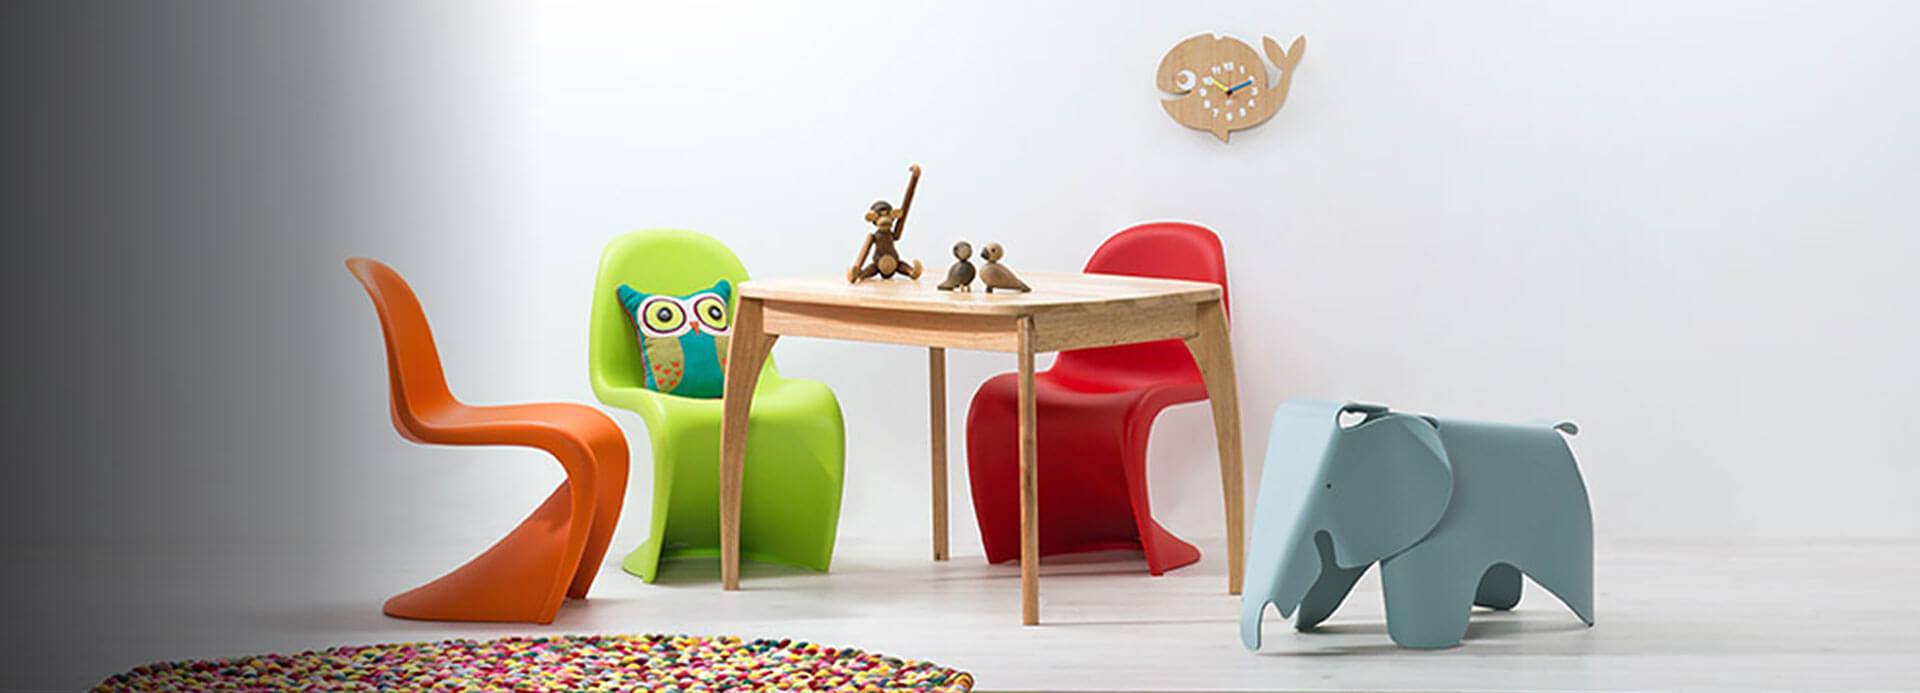 Kids Furniture & Décor